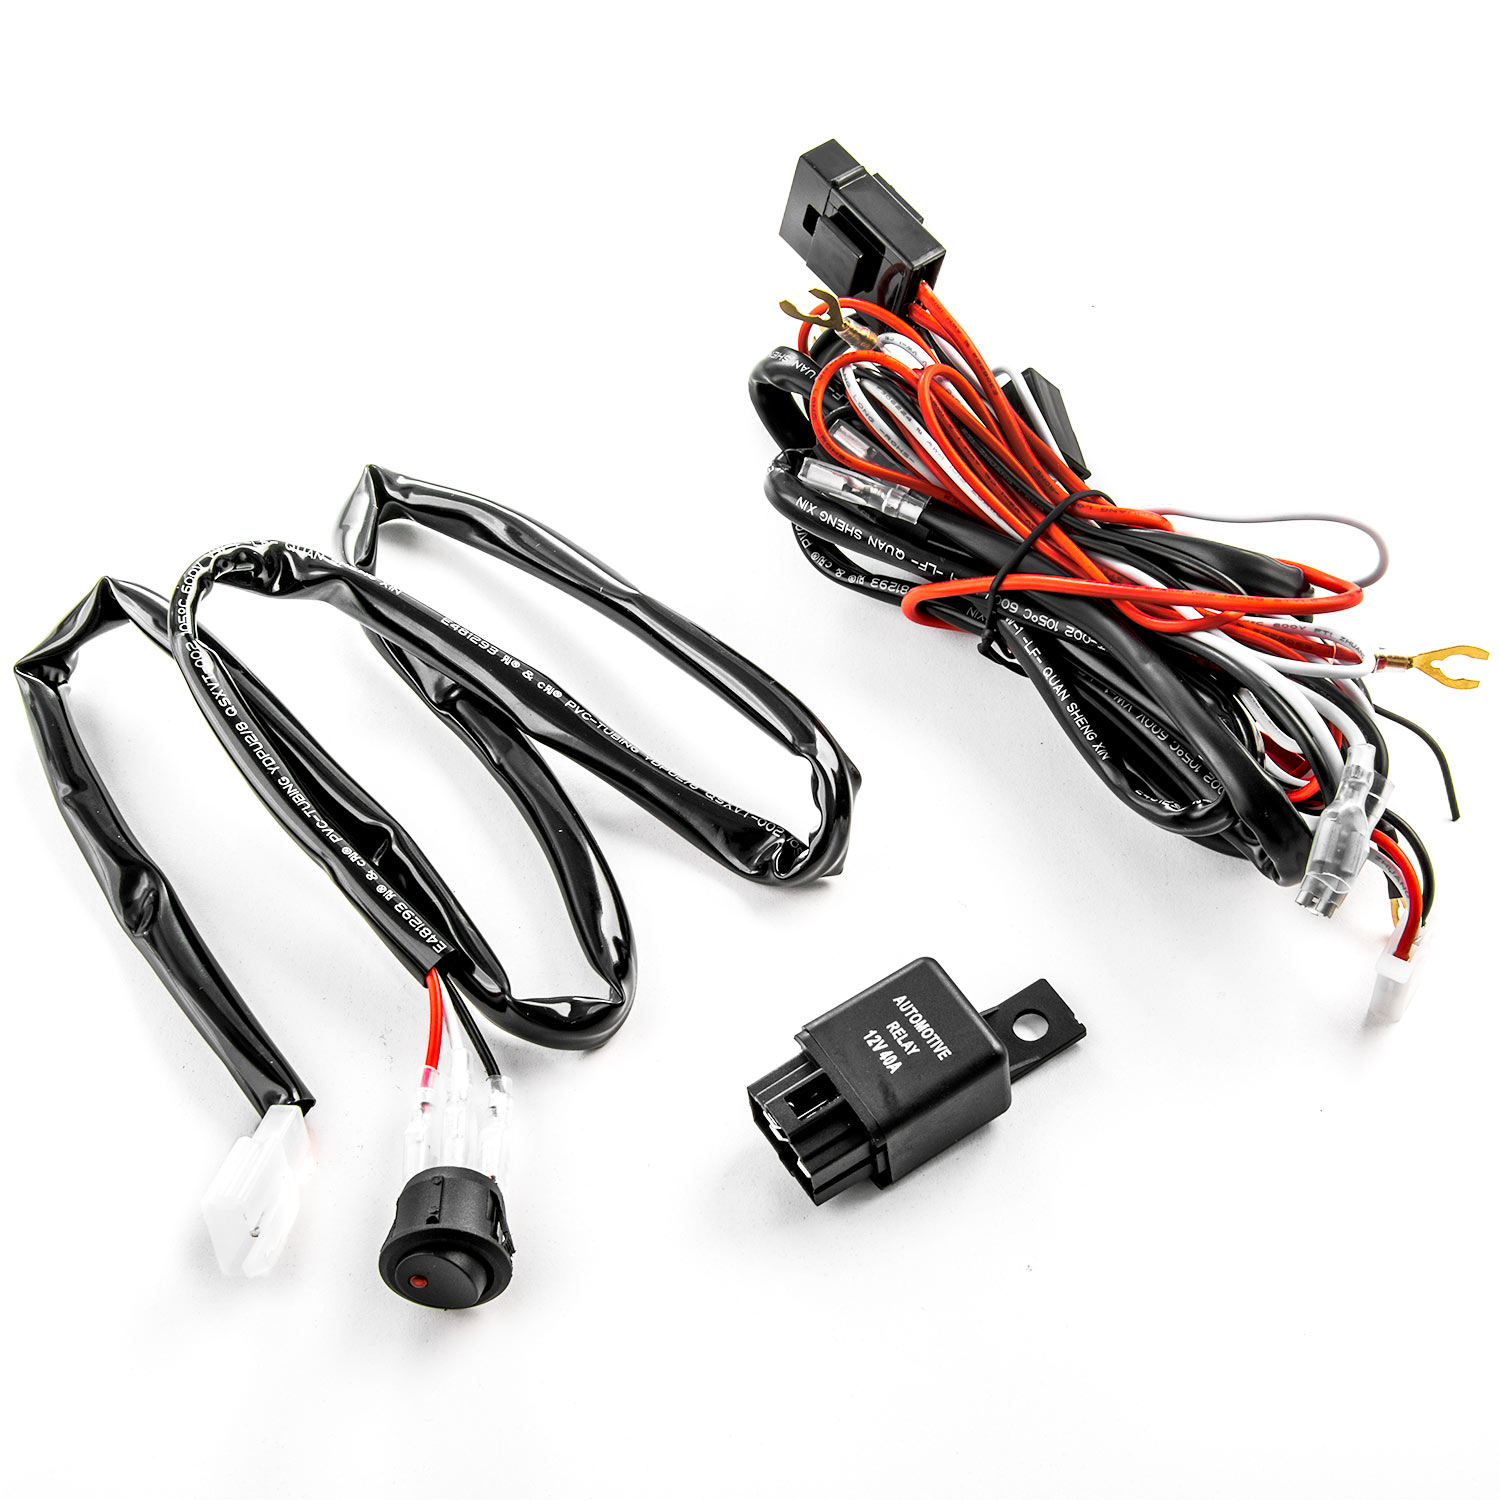 hight resolution of details about universal wiring kit led fog light driving lamp wiring harness fuse switch relay